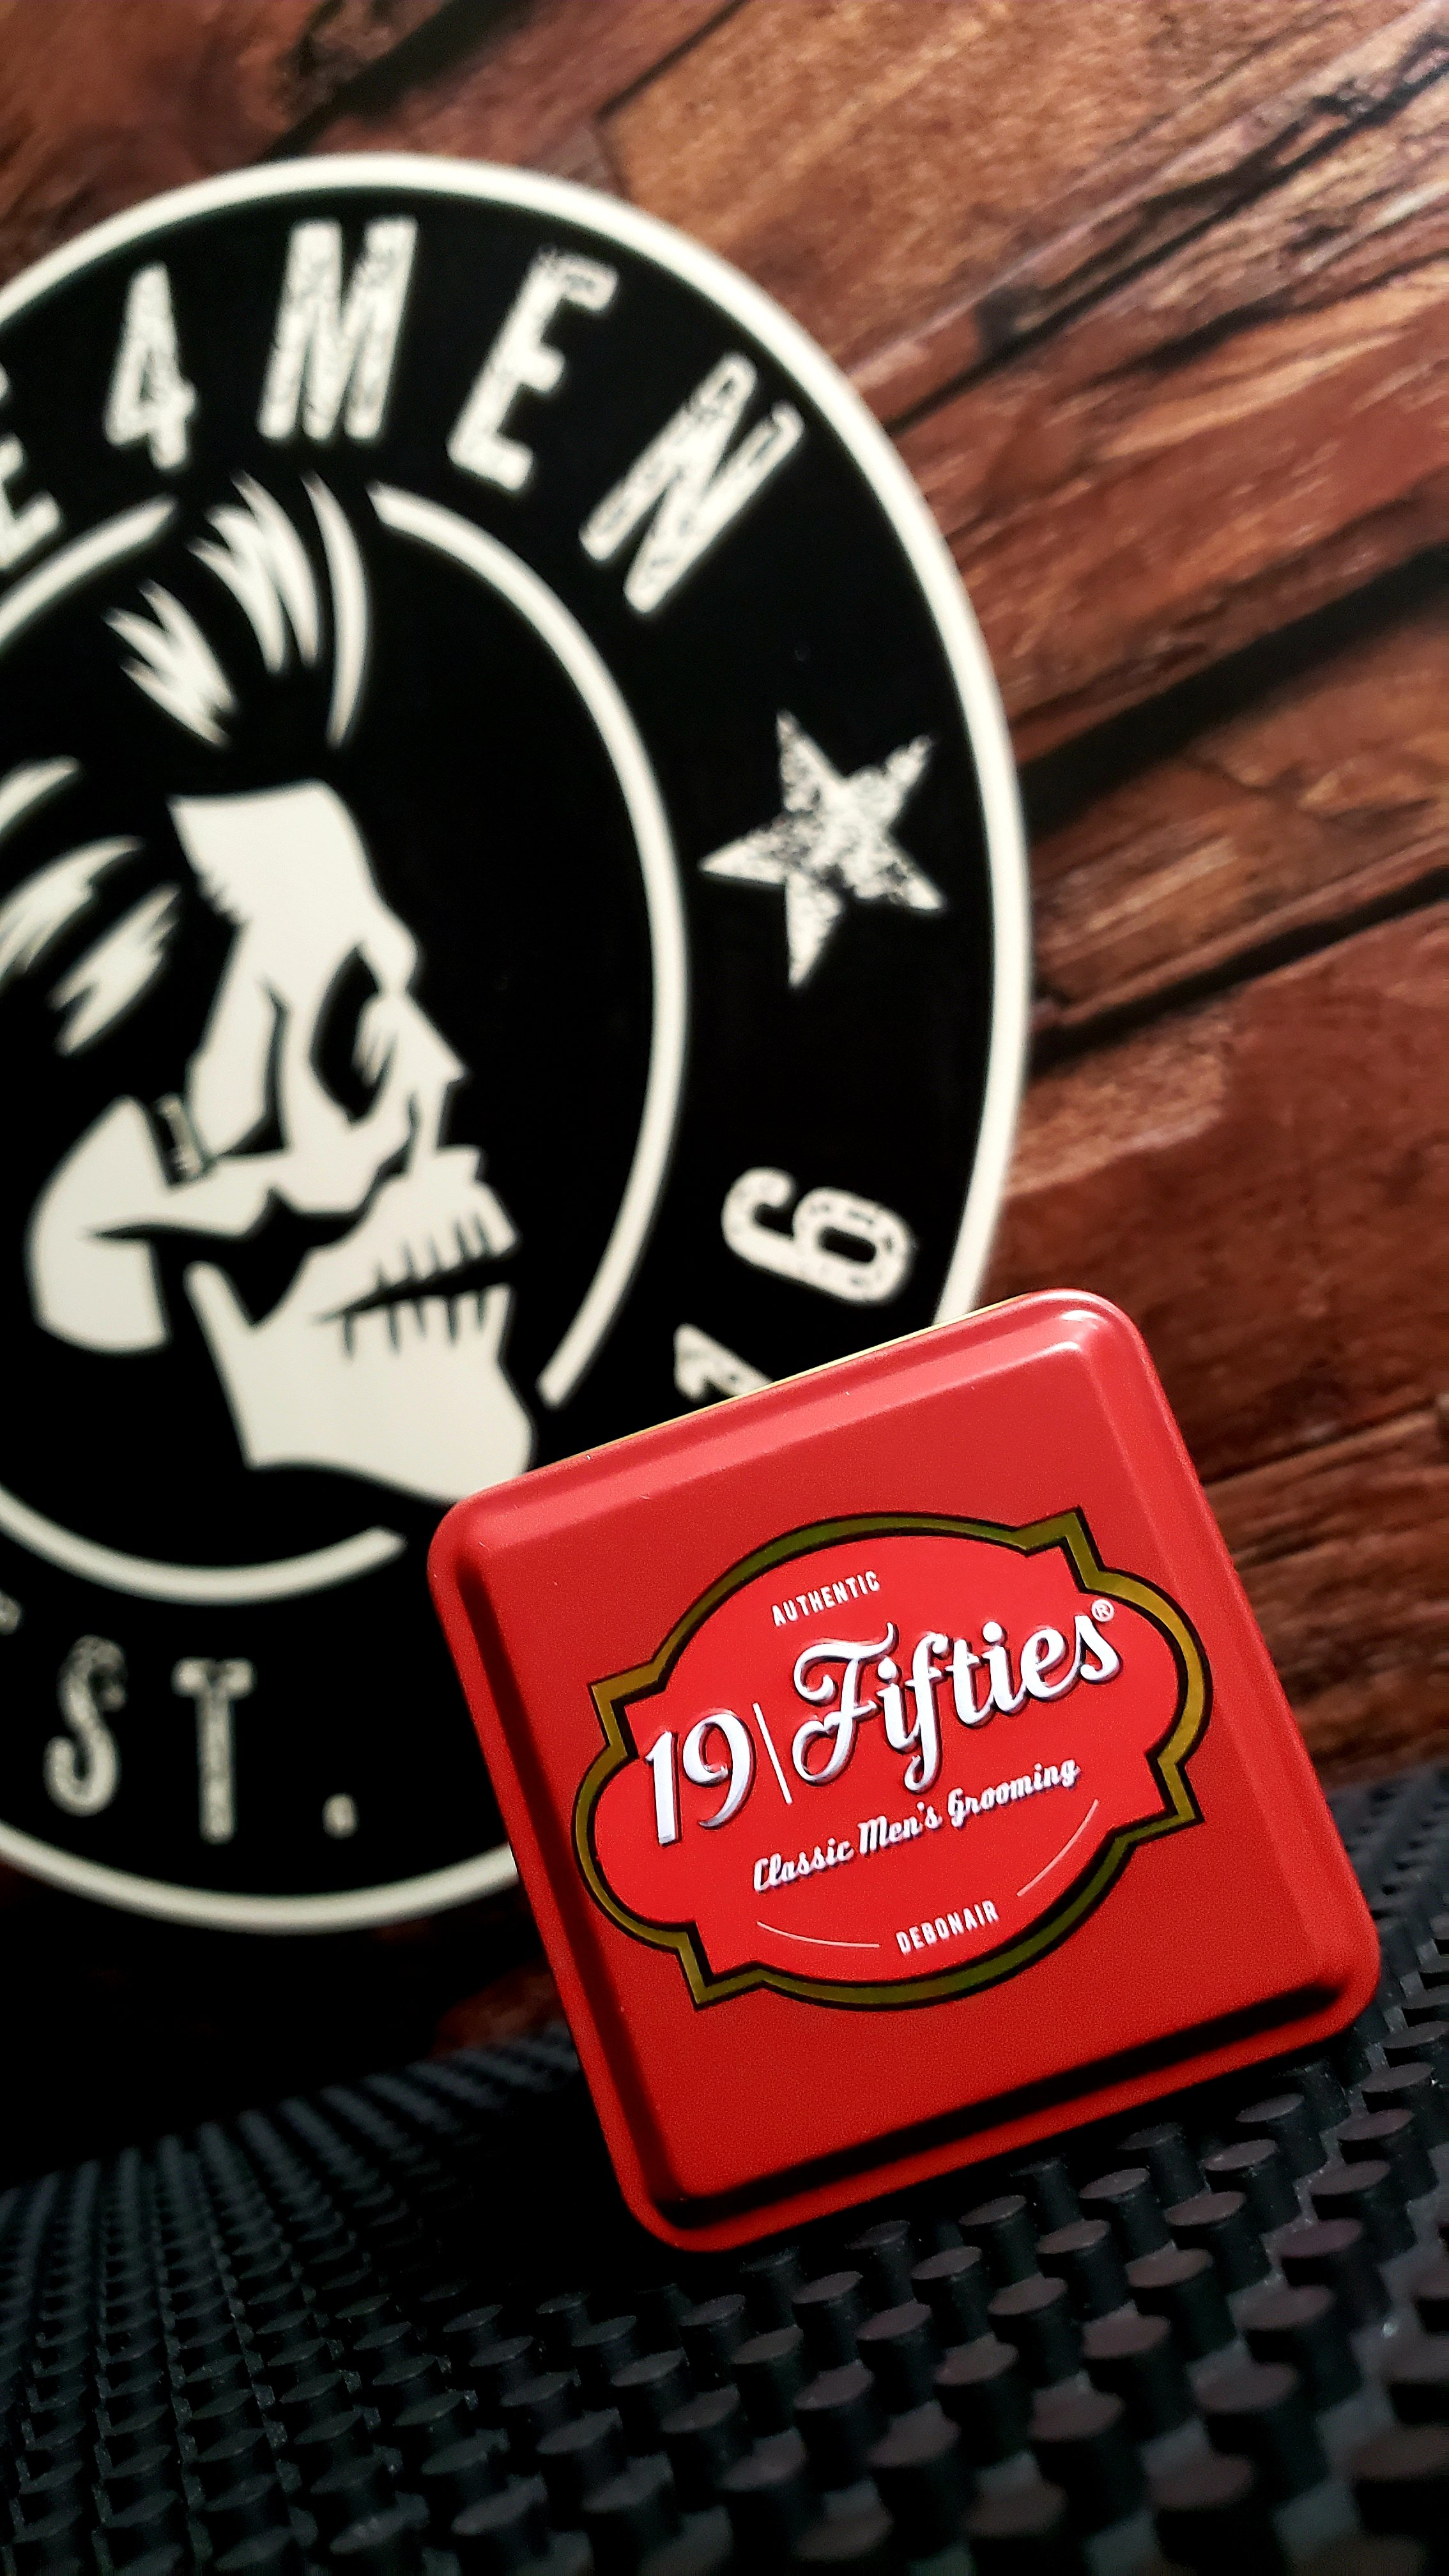 Rediscovering a favorite, the new 19 Fifties pomade